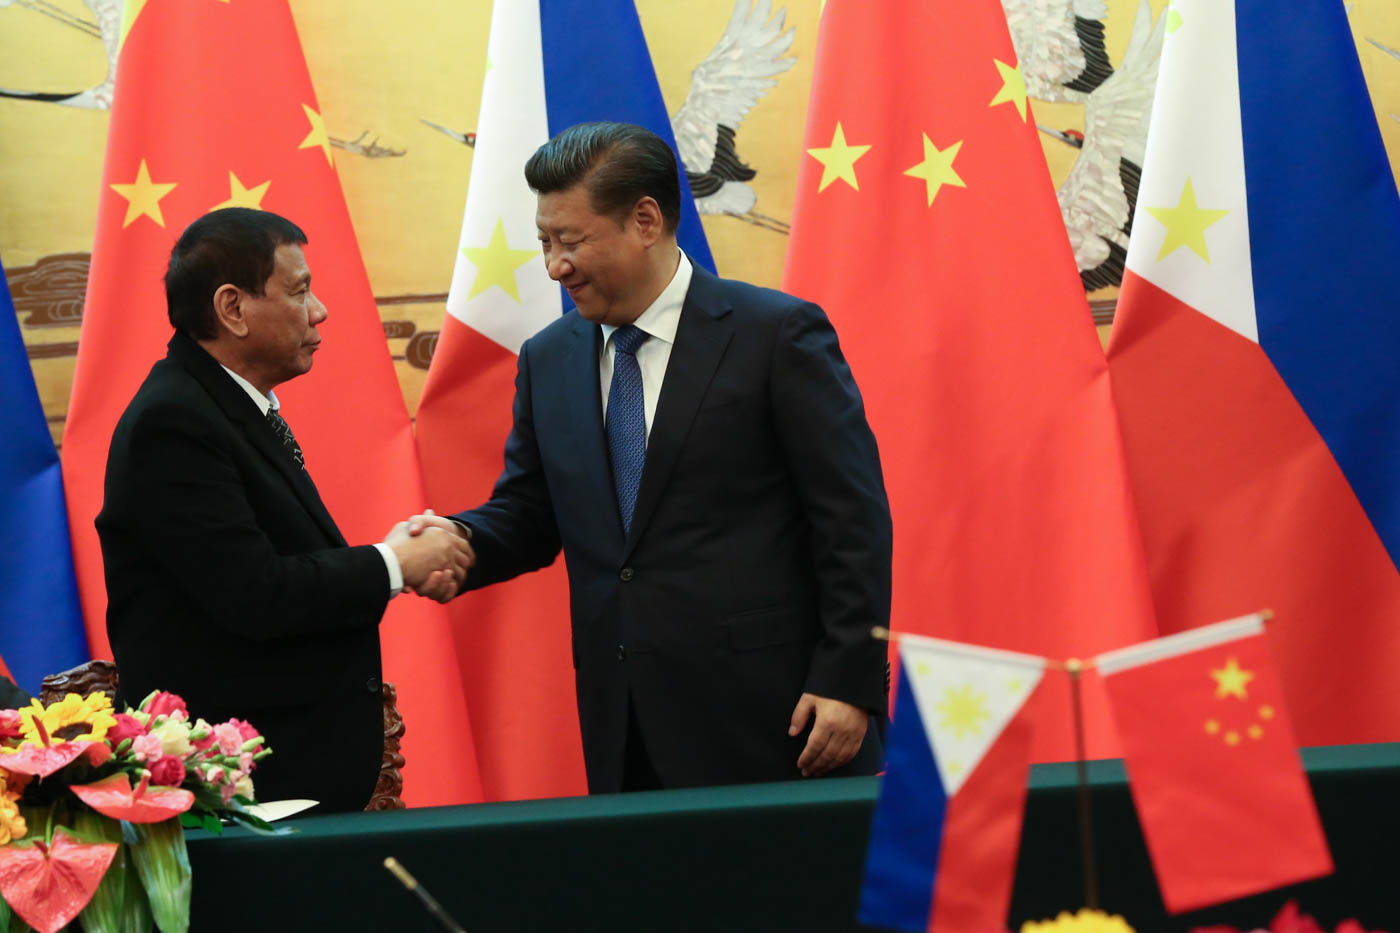 PH, China sign coast guard cooperation pact, 12 other deals